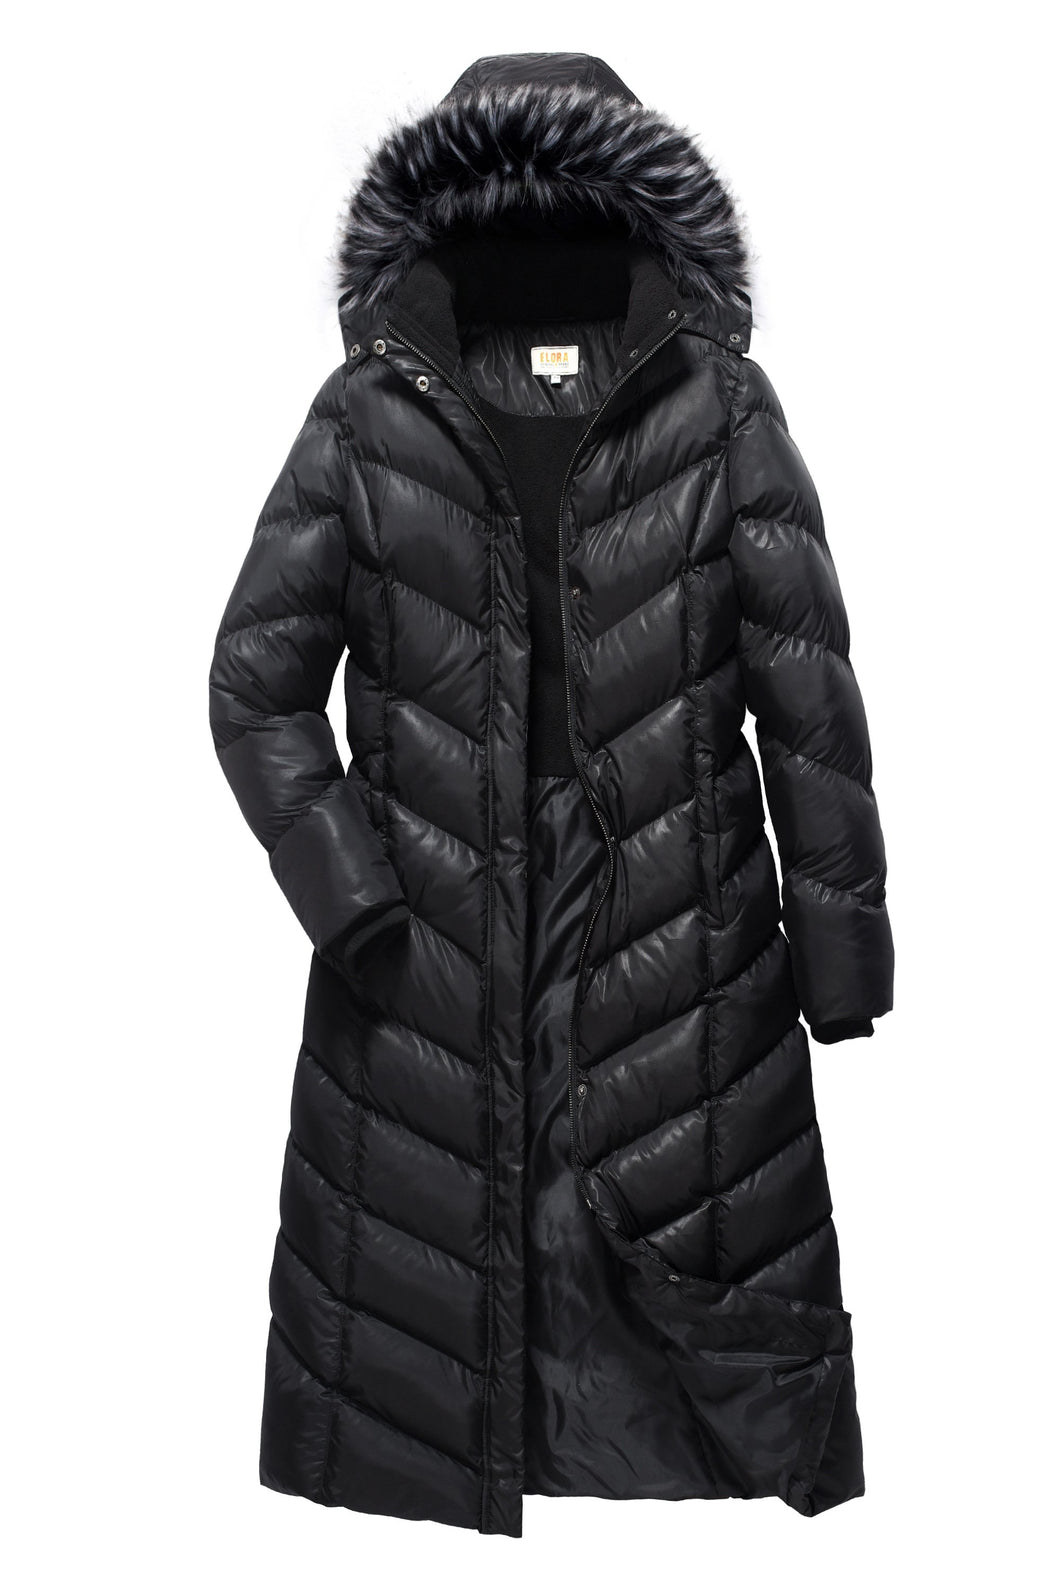 Women's Full Length Parka With Matching Faux-Fur Hood